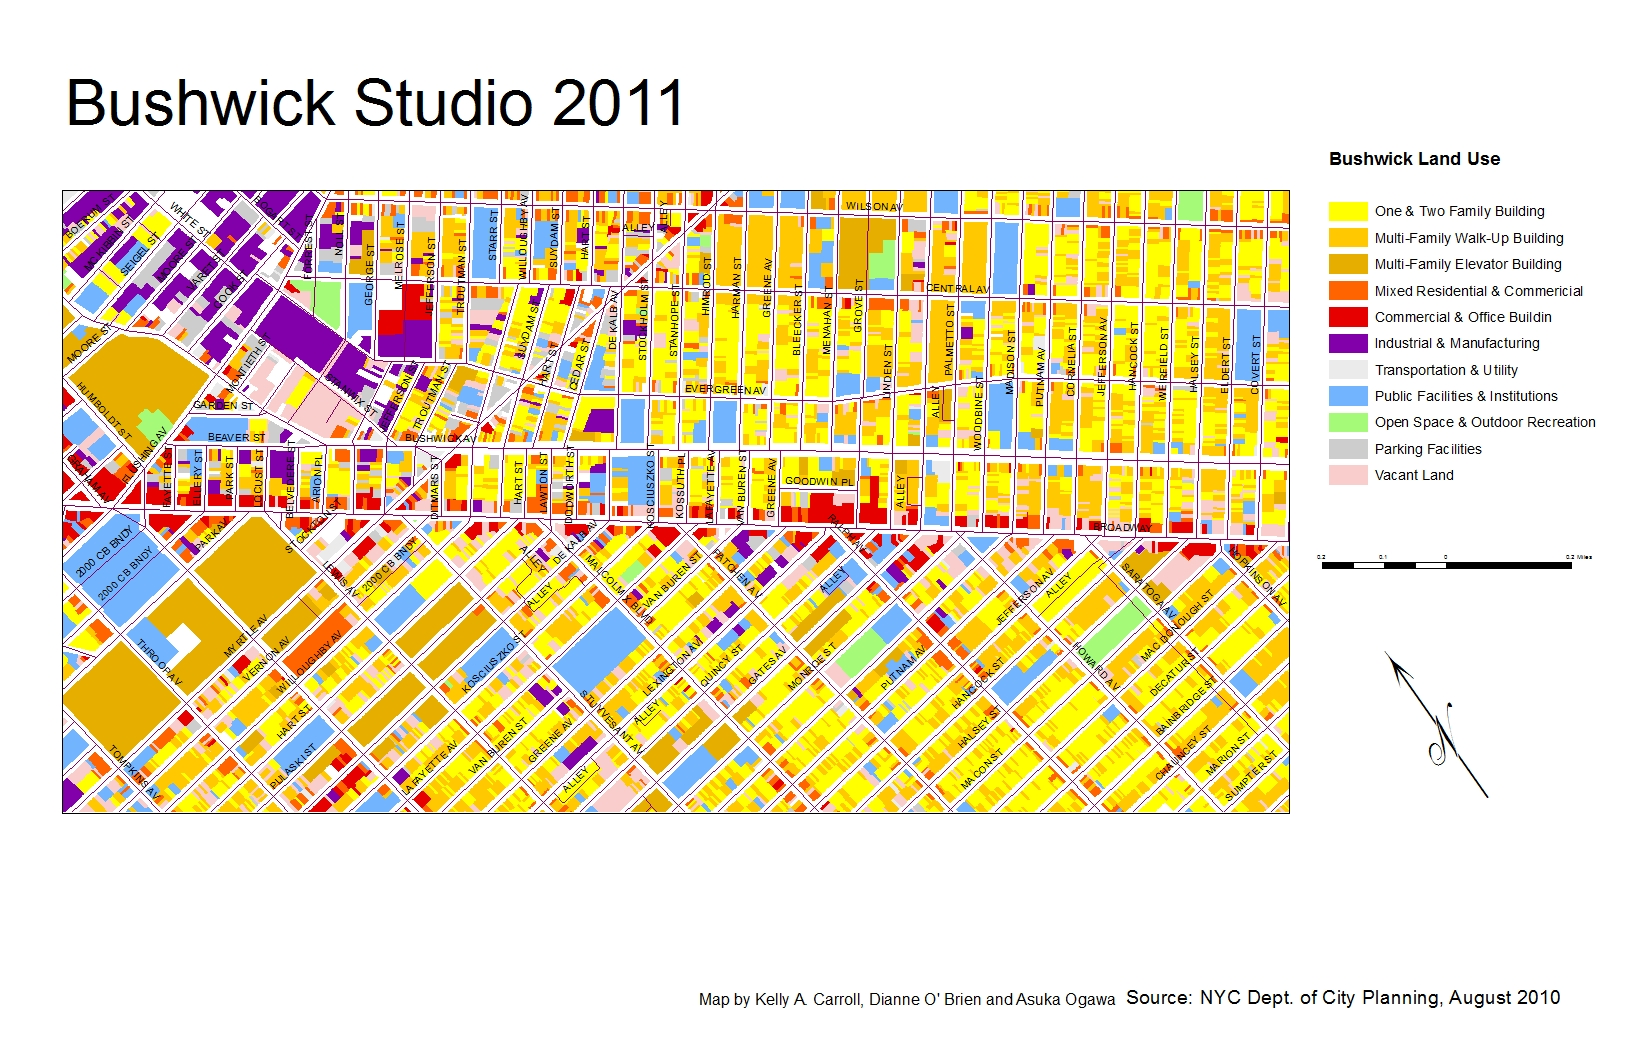 BUSHWICK_LAND_USE.jpg